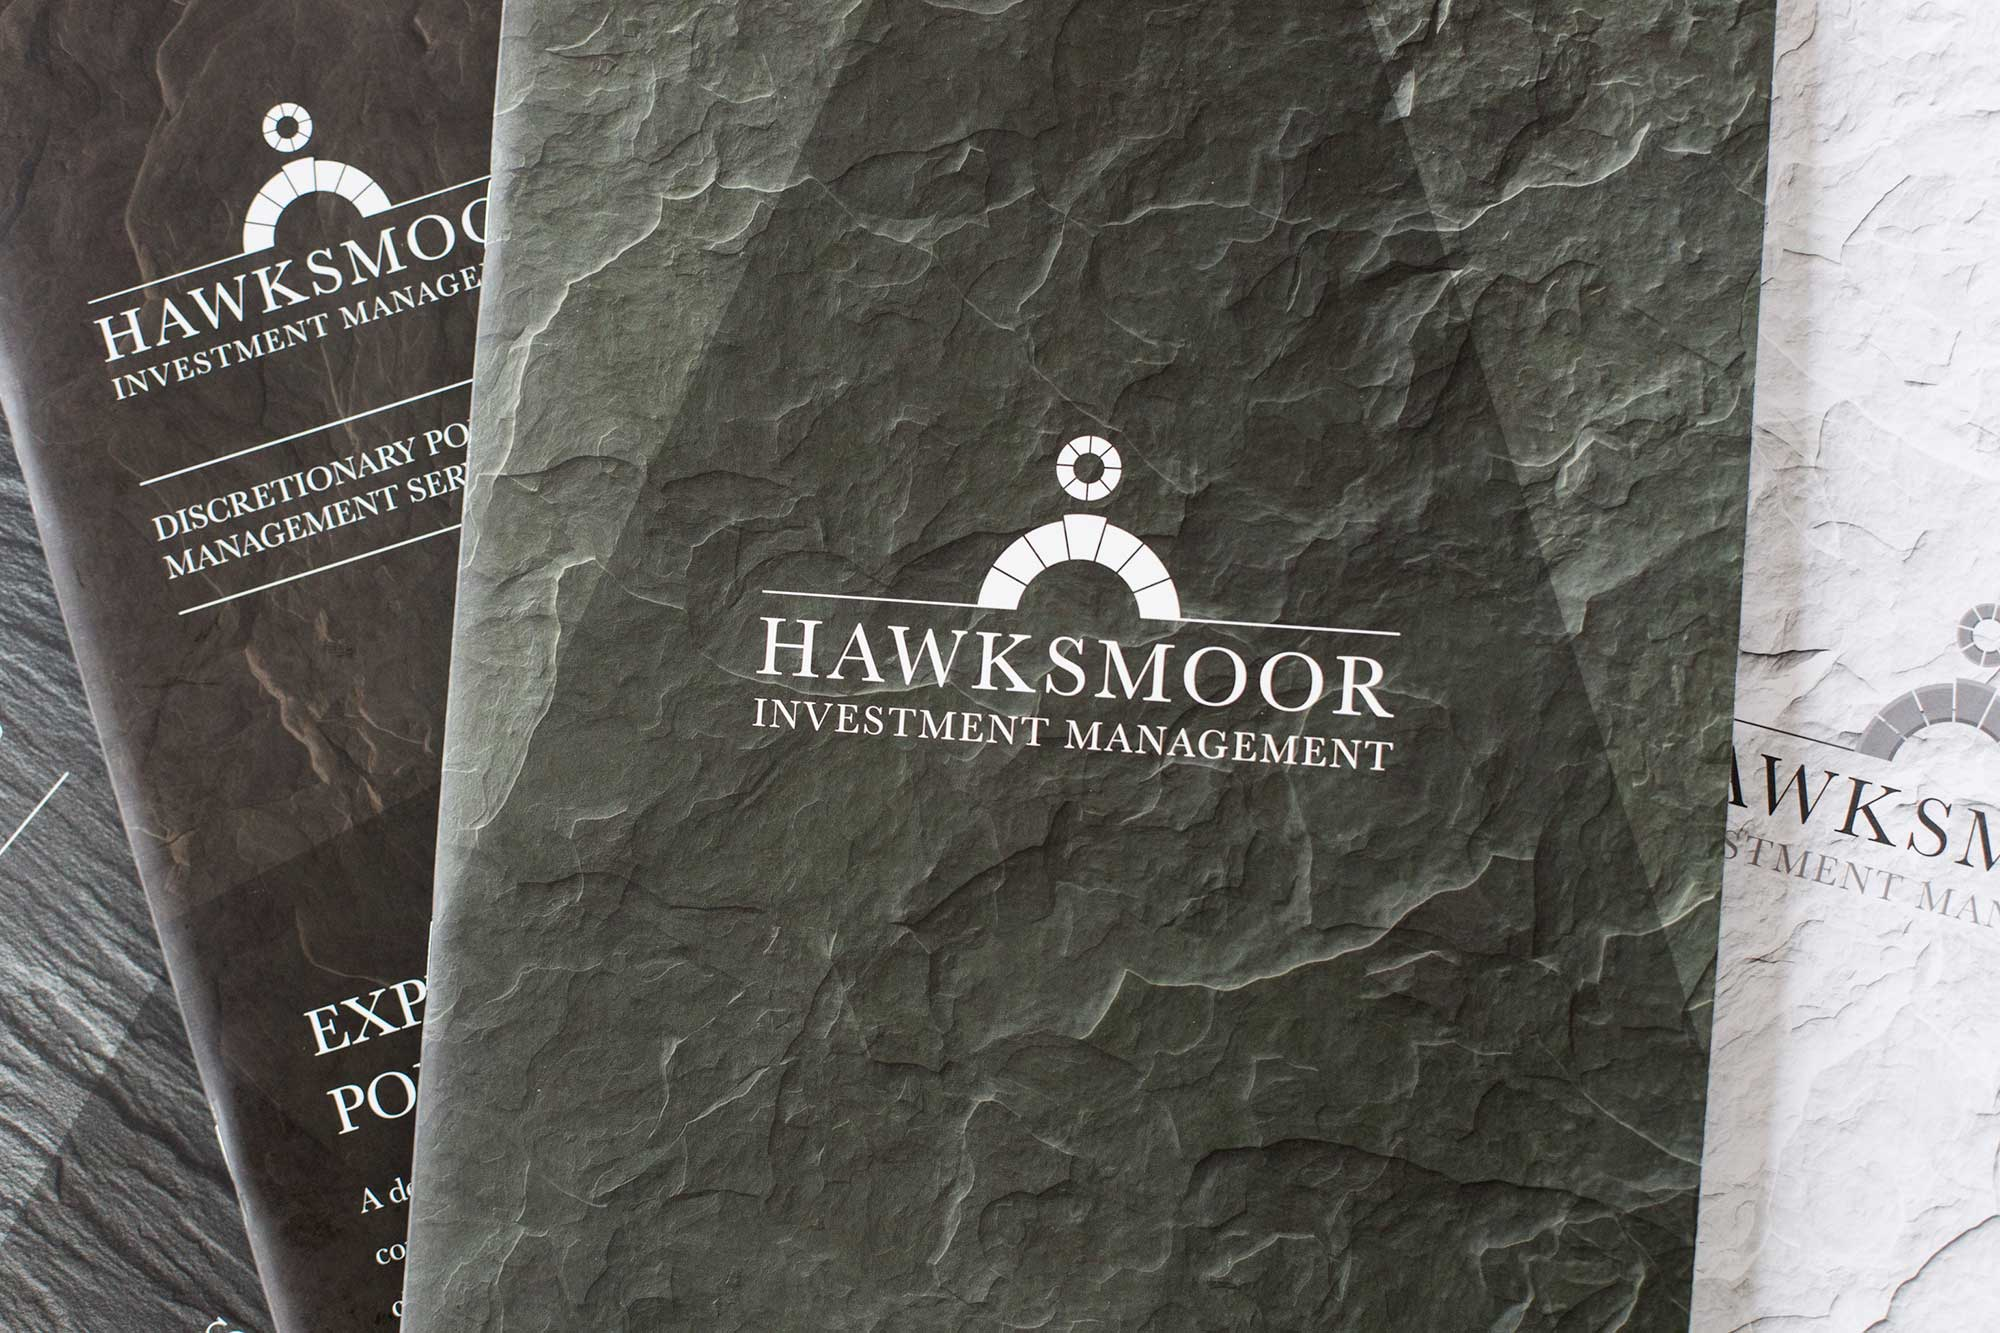 Brand design and strategy for Hawksmoor Investment Management